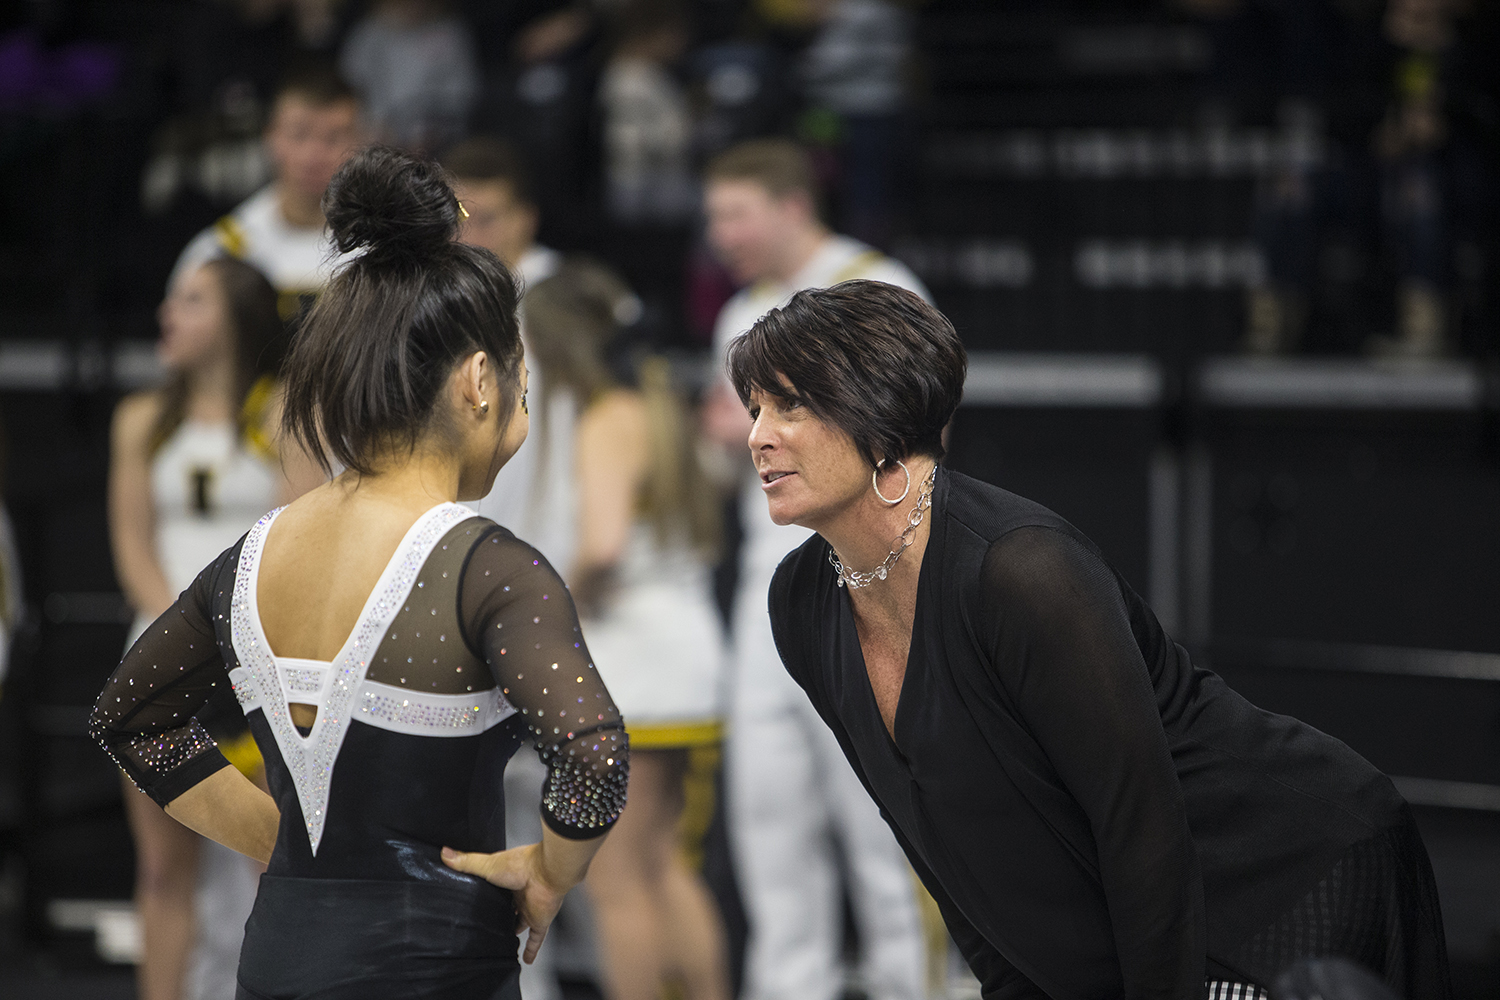 Assistant+coach+Jennifer+Green+talks+to+Iowa+gymnast+Clair+Kaji+at+a+meet+against+Rutgers+on+Saturday%2C+January+26%2C+2019.+The+Hawkeyes+defeated+the+Scarlet+Knights+194.575+to+191.675.+